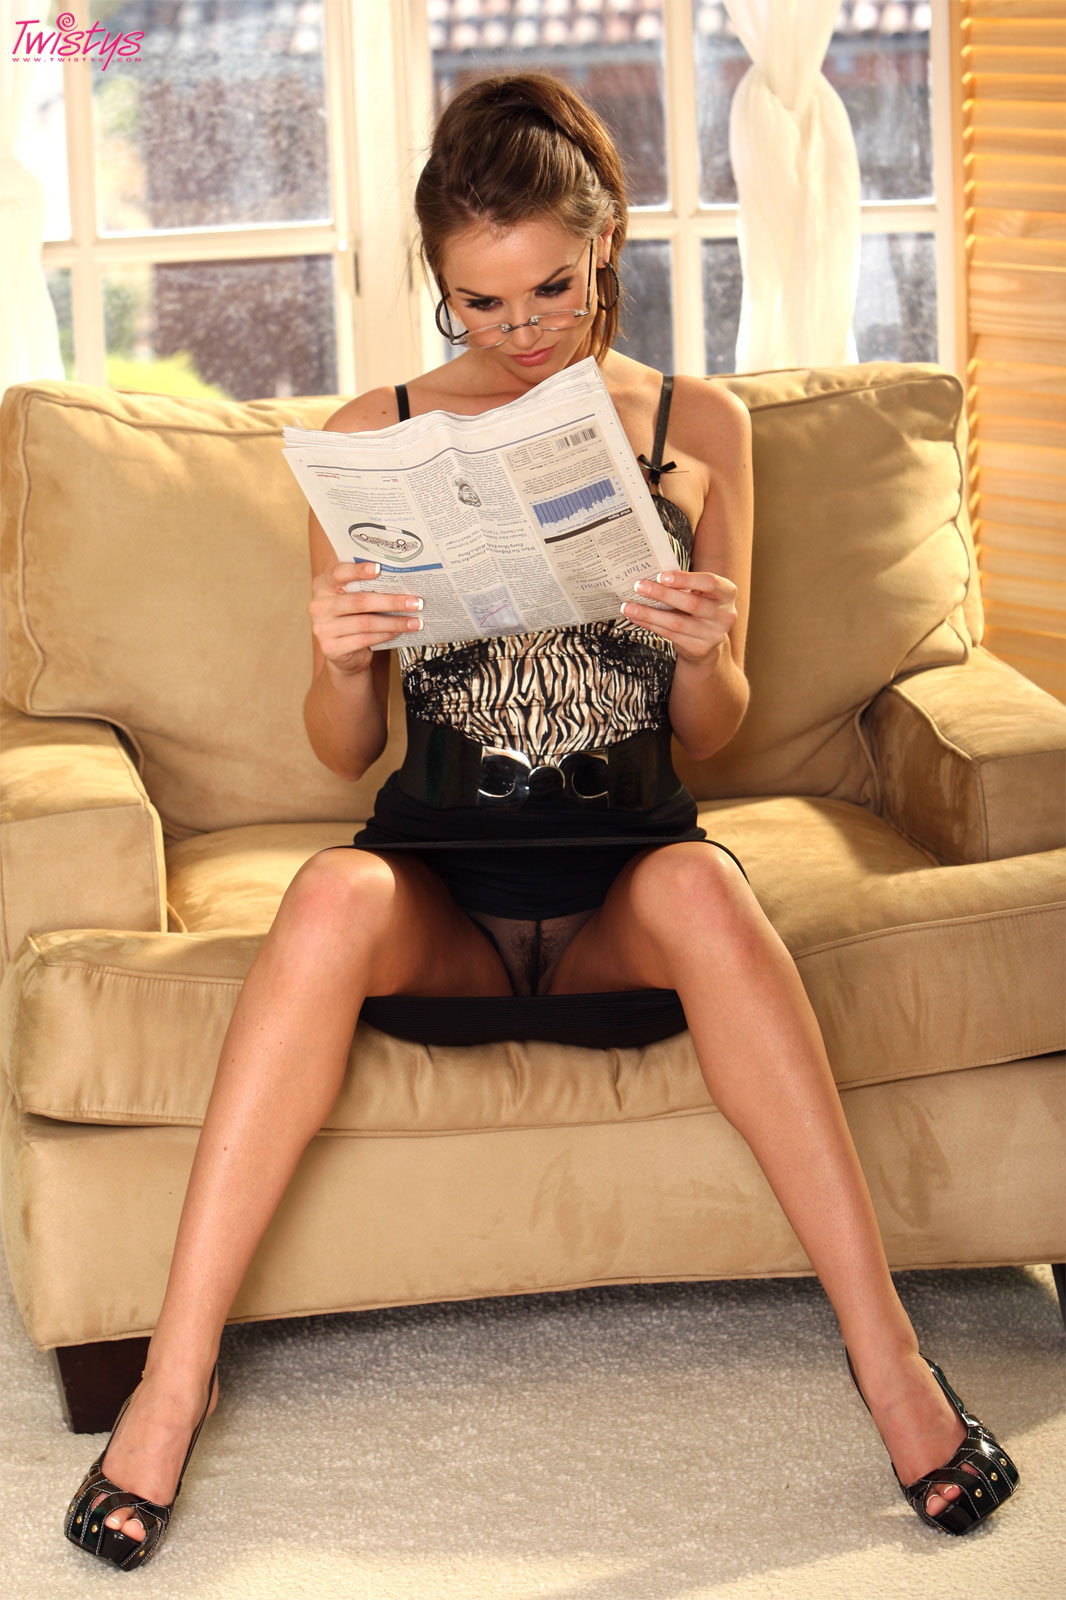 Booty secretary reading newspaper takes anal at the office 3